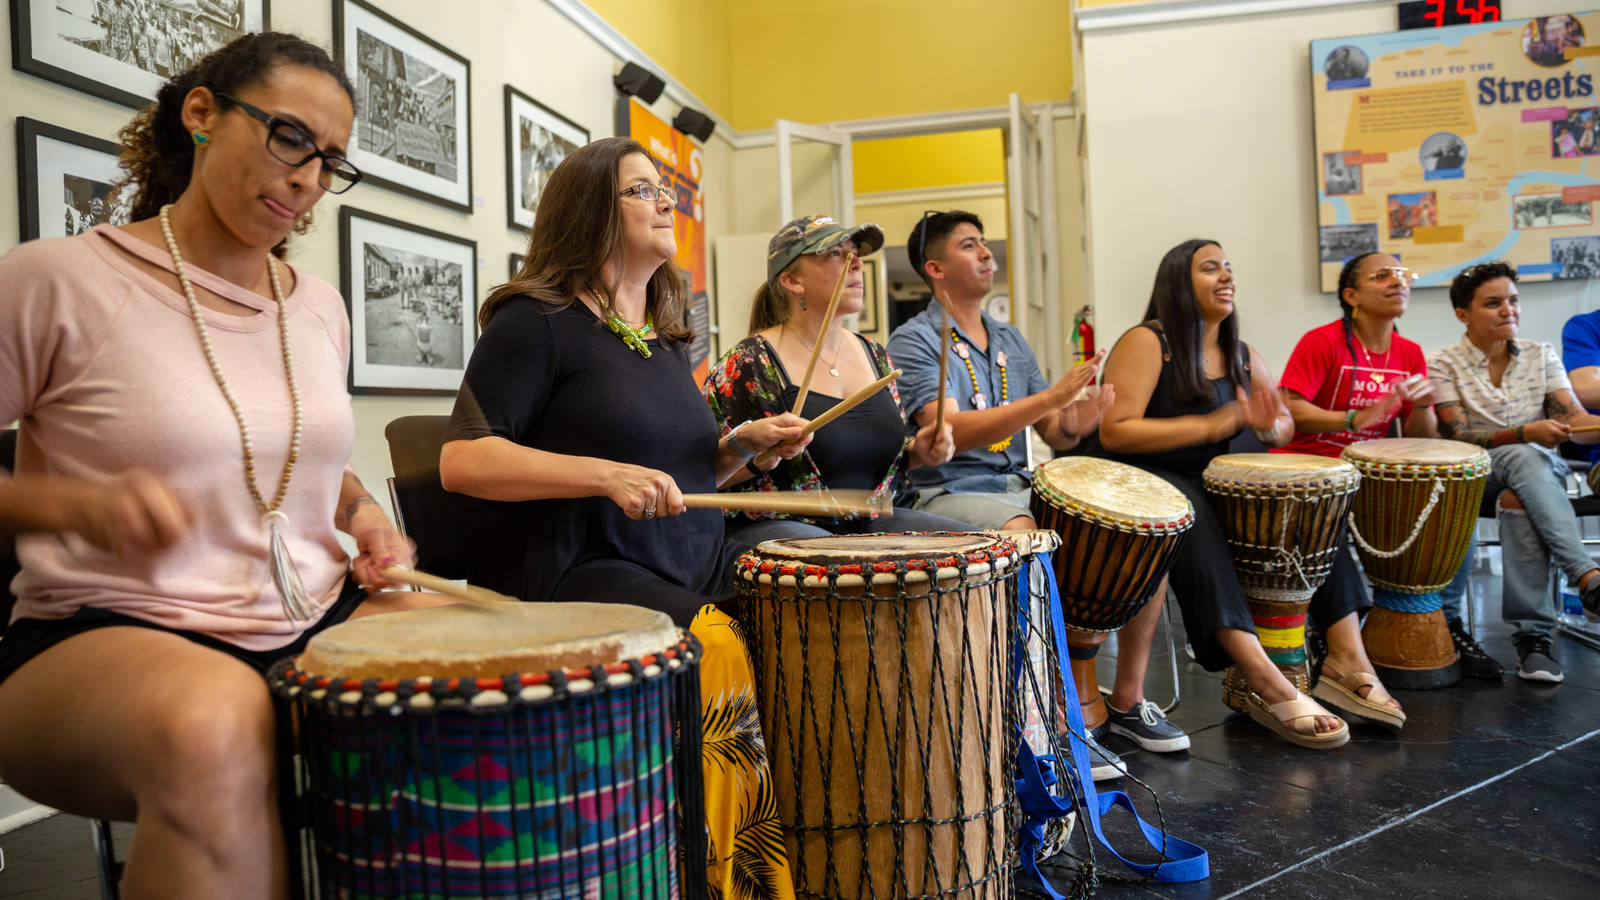 <p>This group of veterans took time to soak in the local culture while on an NPCA-organized trip to New Orleans Jazz National Historical Park.</p>